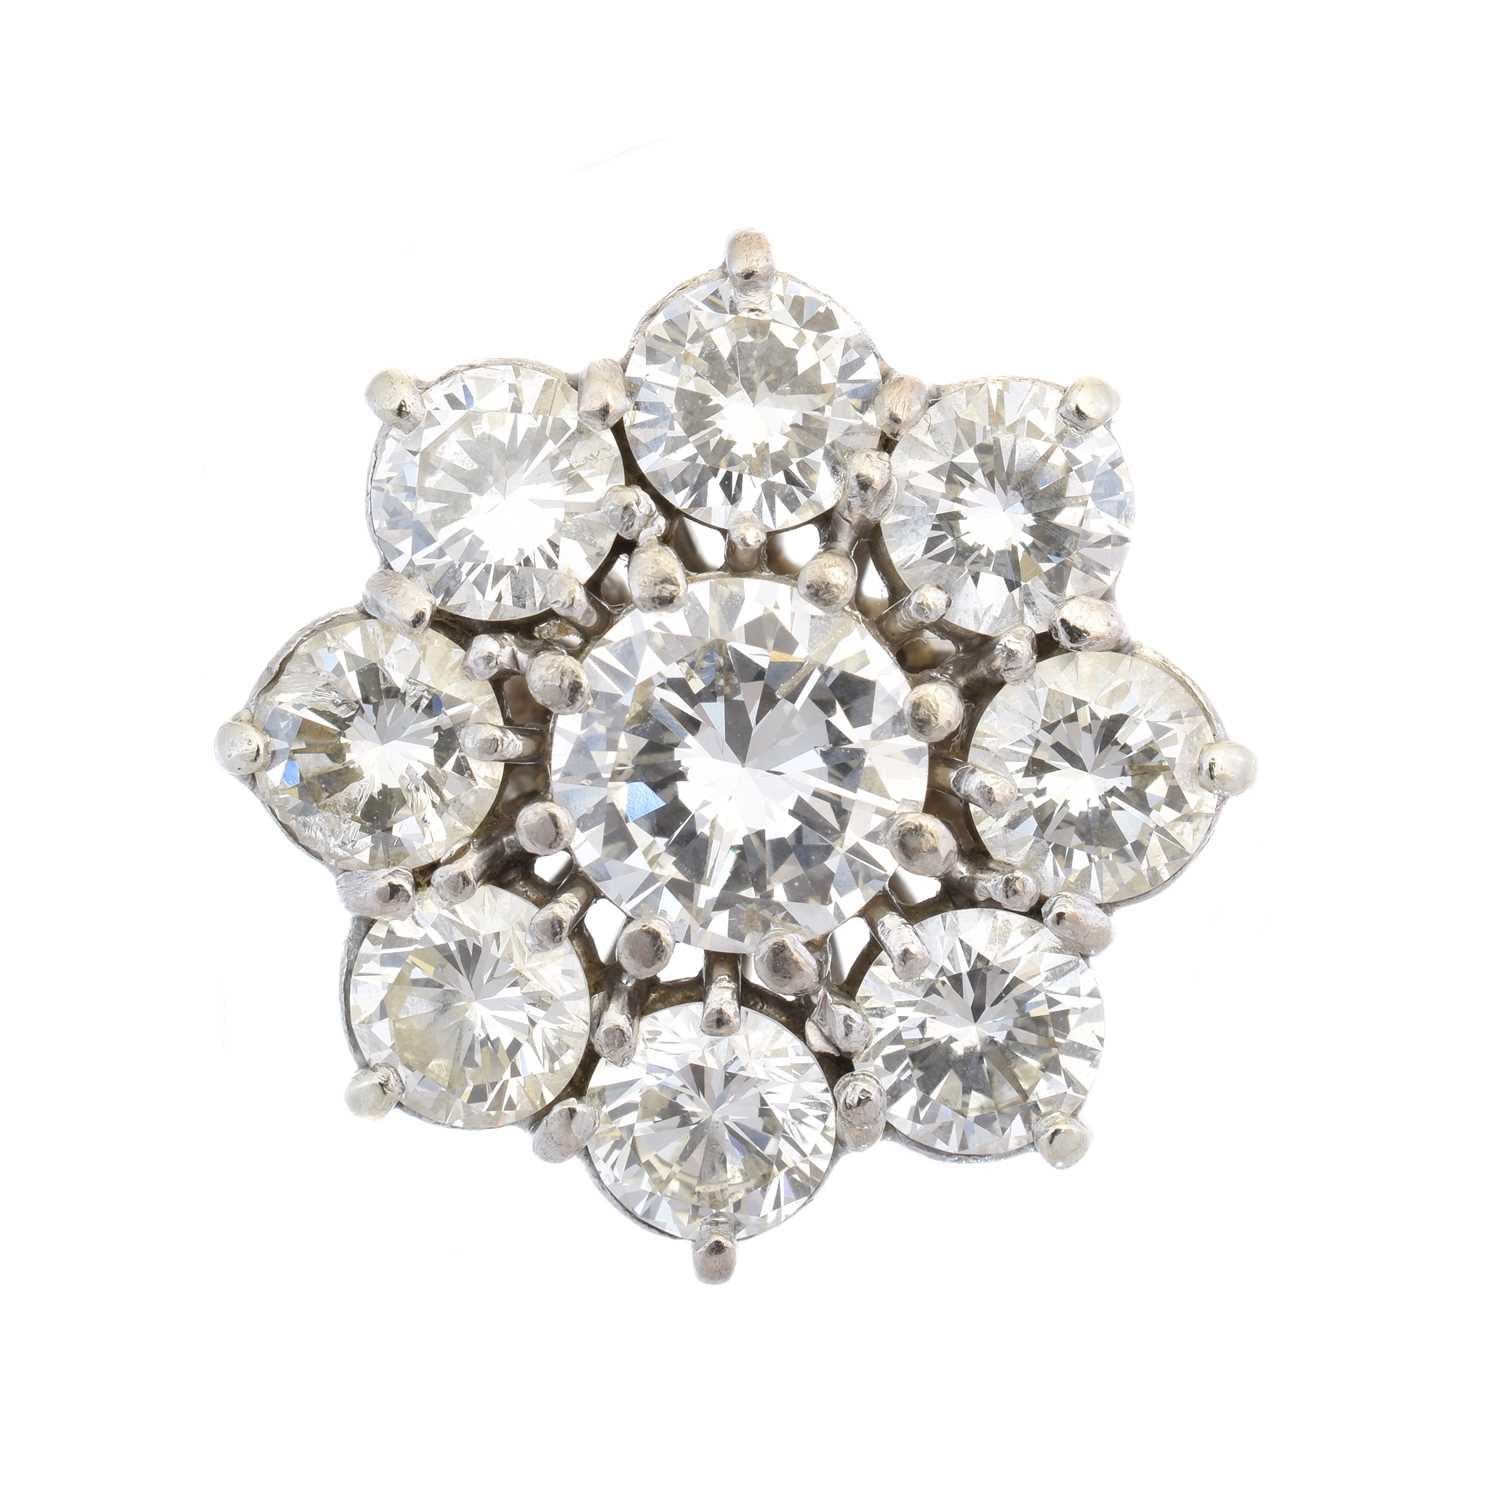 Lot 104 - An 18ct gold diamond cluster ring